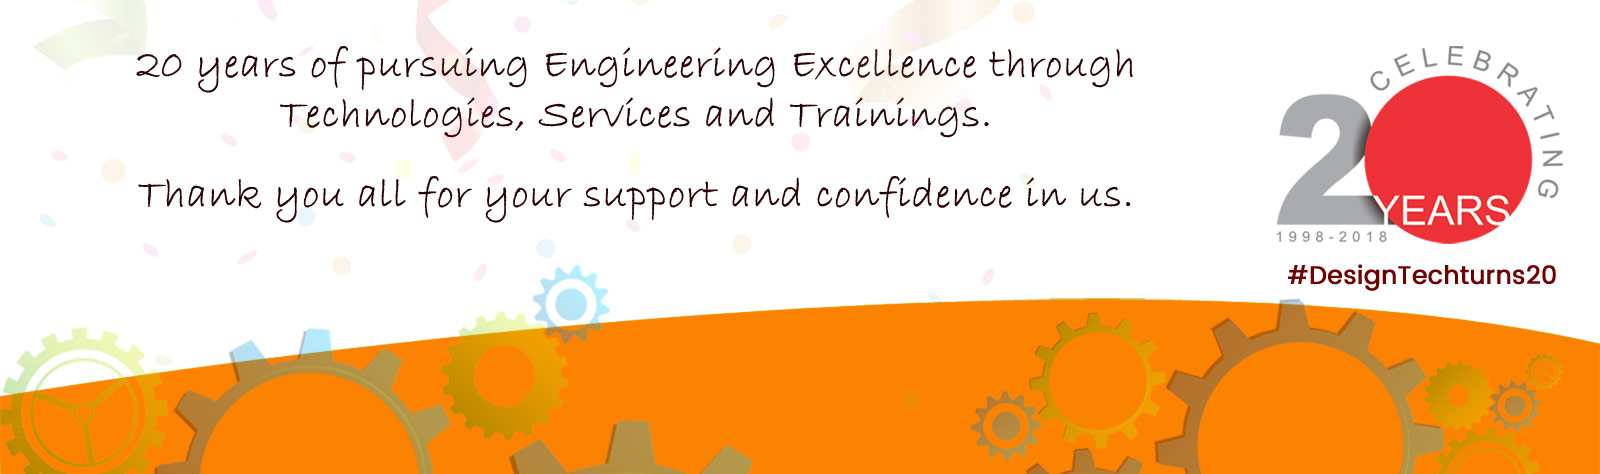 20 years of pursuing Engineering Excellence through Technologies, Services and Trainings